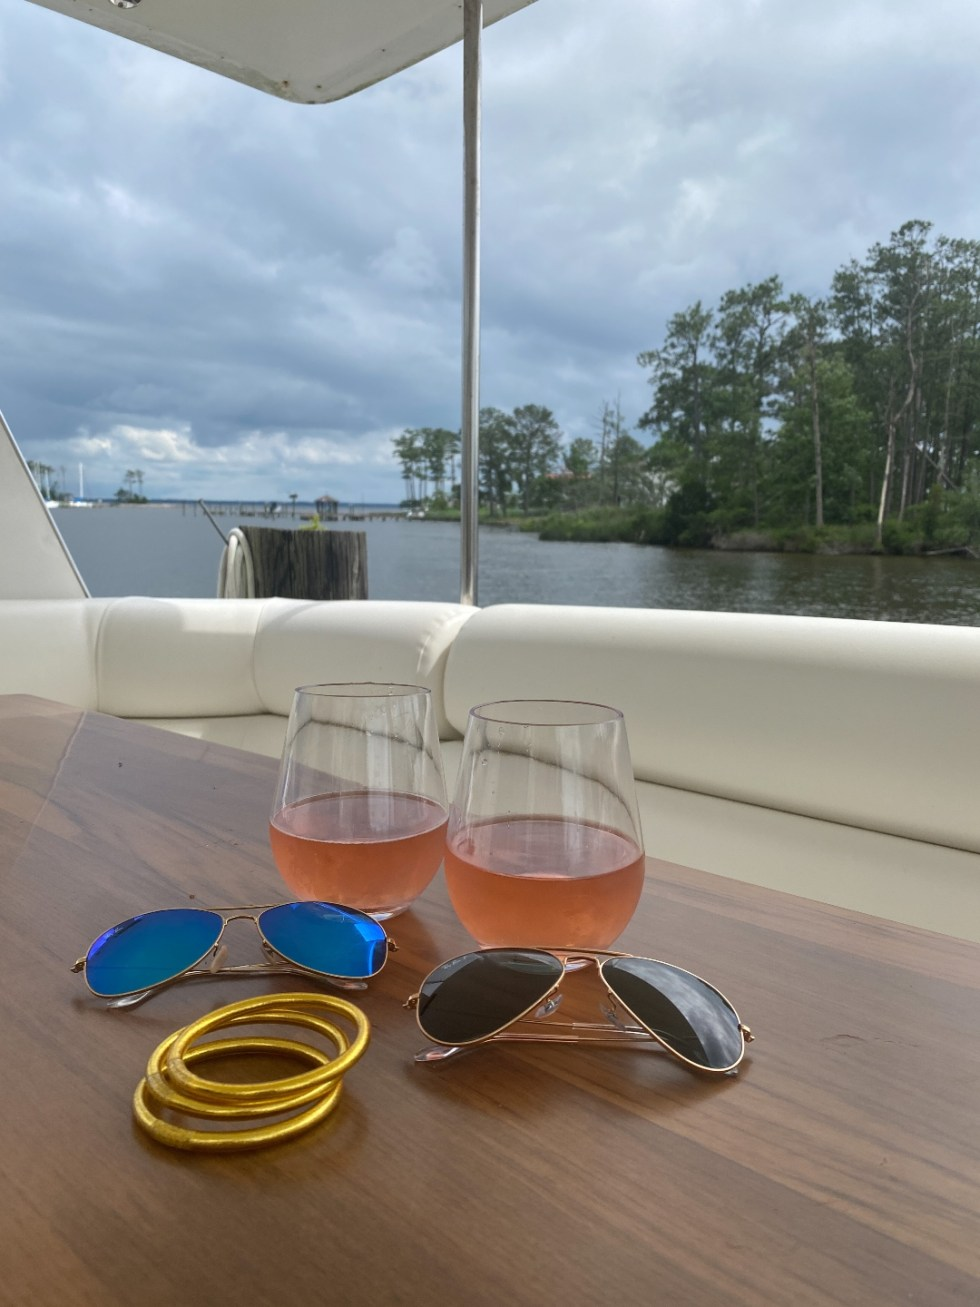 What to Do in Oriental, NC - I'm Fixin' To - @imfixintoblog | Things to do in Oriental NC by popular NC travel blog, I'm Fixin' To: image of two stemless wine glasses filled with rose wine next to two pairs of aviator sunglasses.